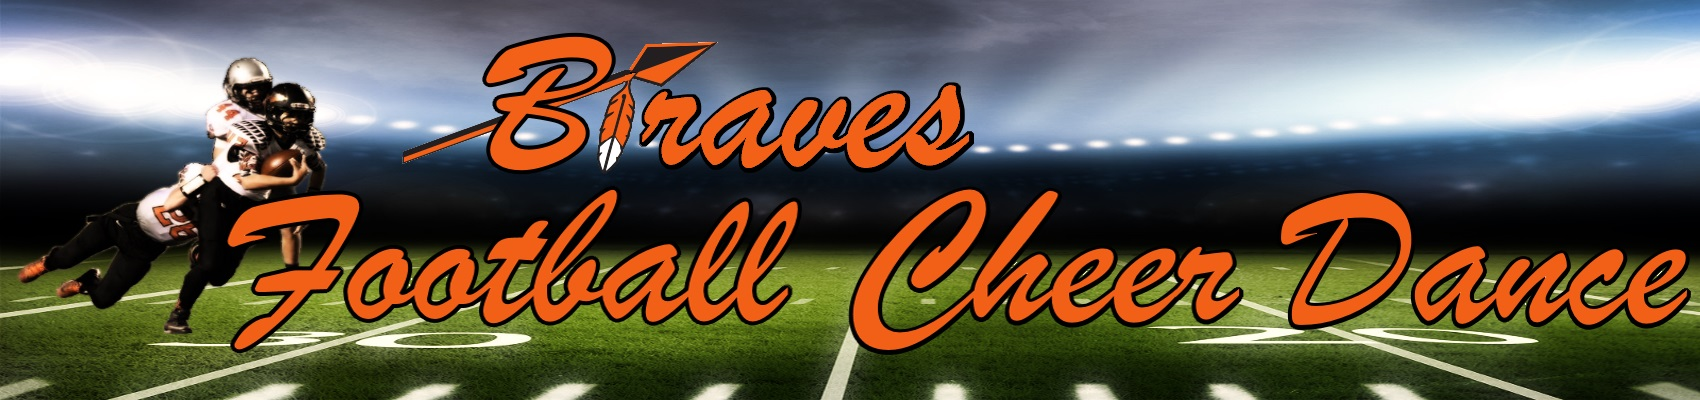 Chanooka Braves, Multi-Sport, Goal, Field